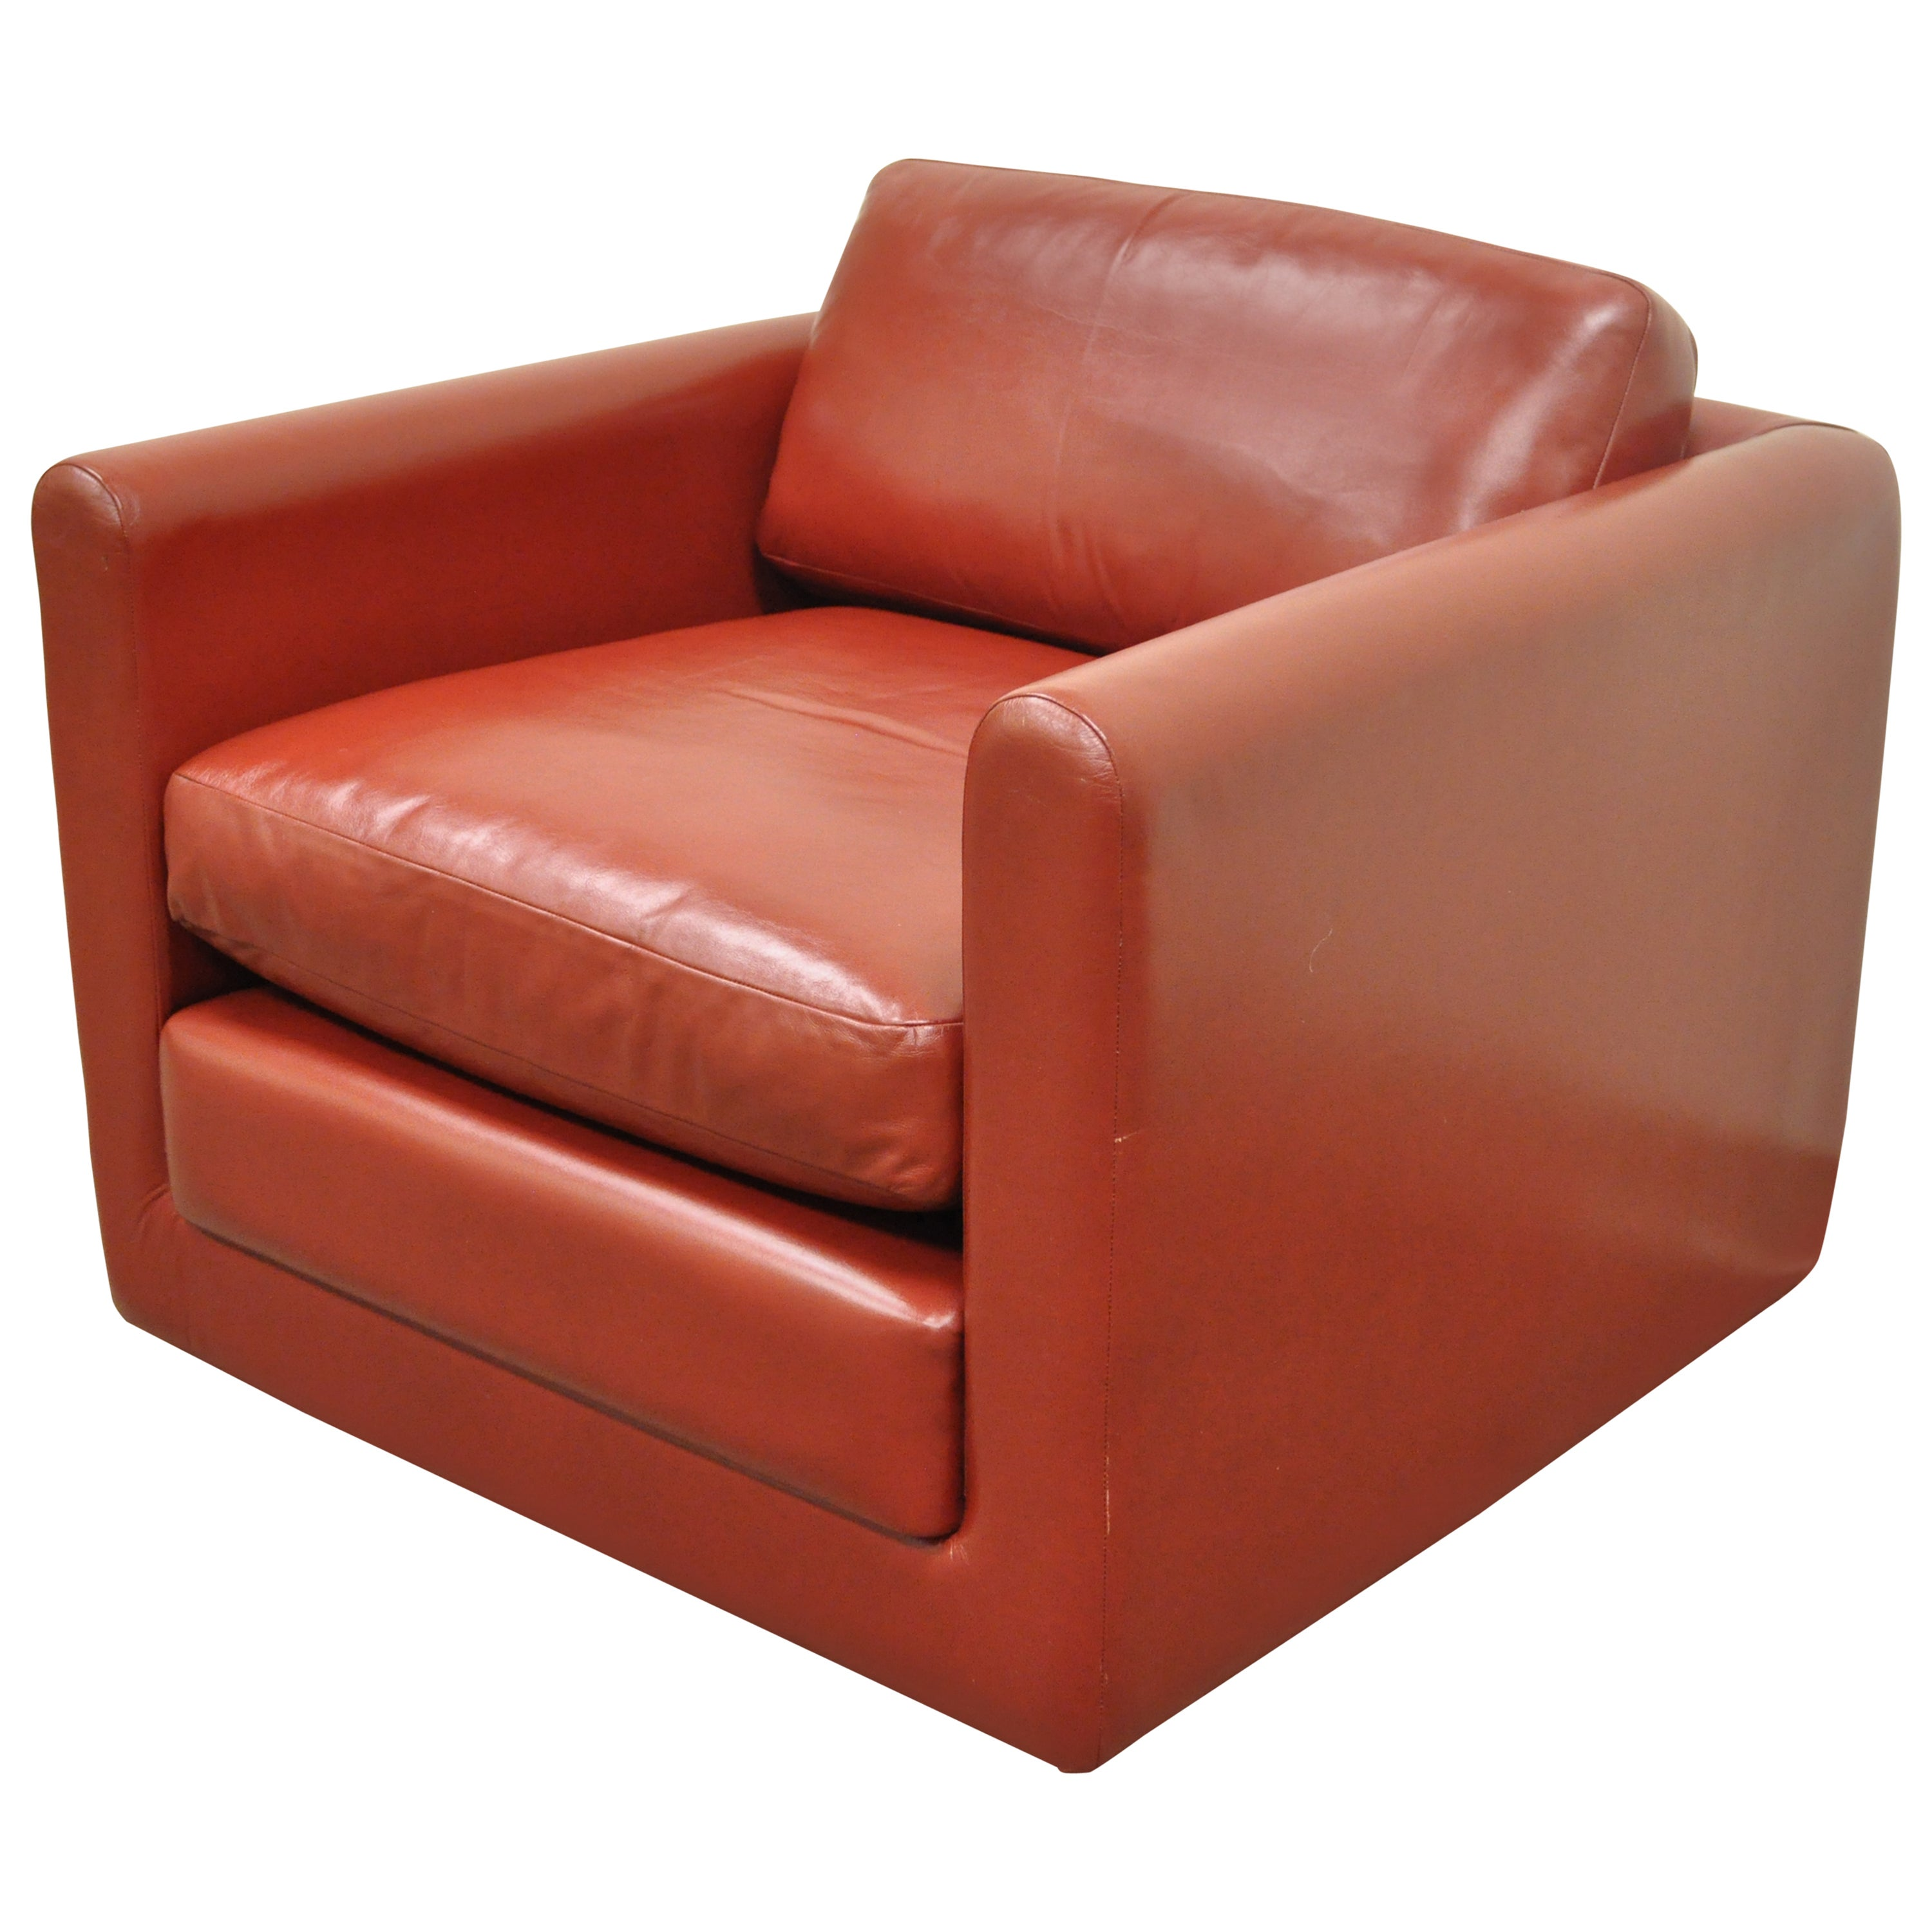 Red Leather Cube Club or Lounge Chair on Rolling Casters